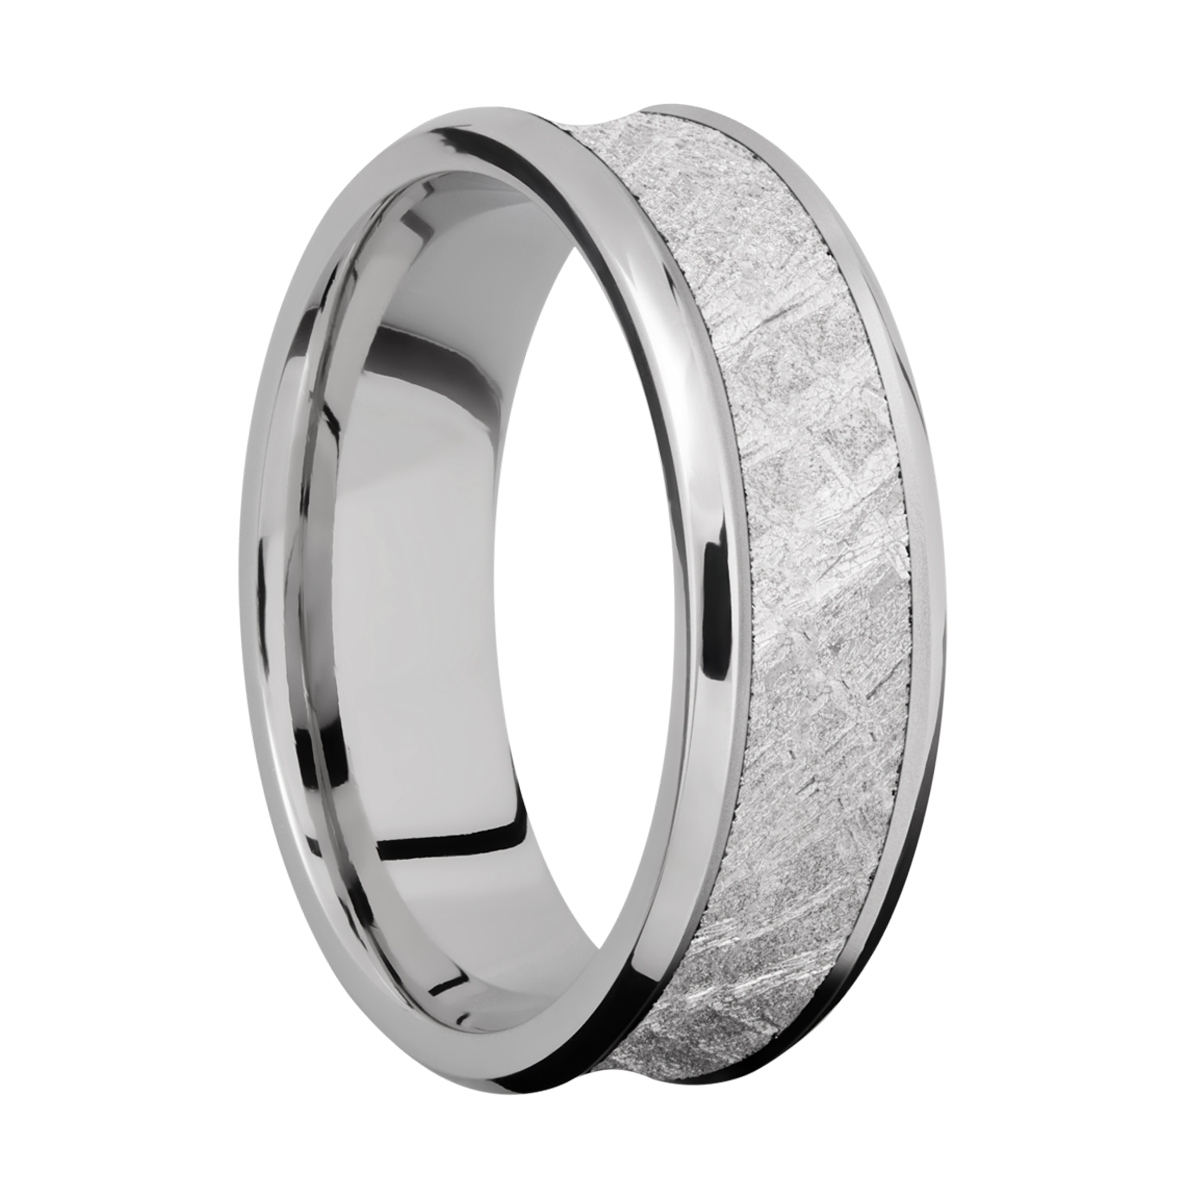 Lashbrook 7CB15/METEORITE Titanium Wedding Ring or Band Alternative View 1